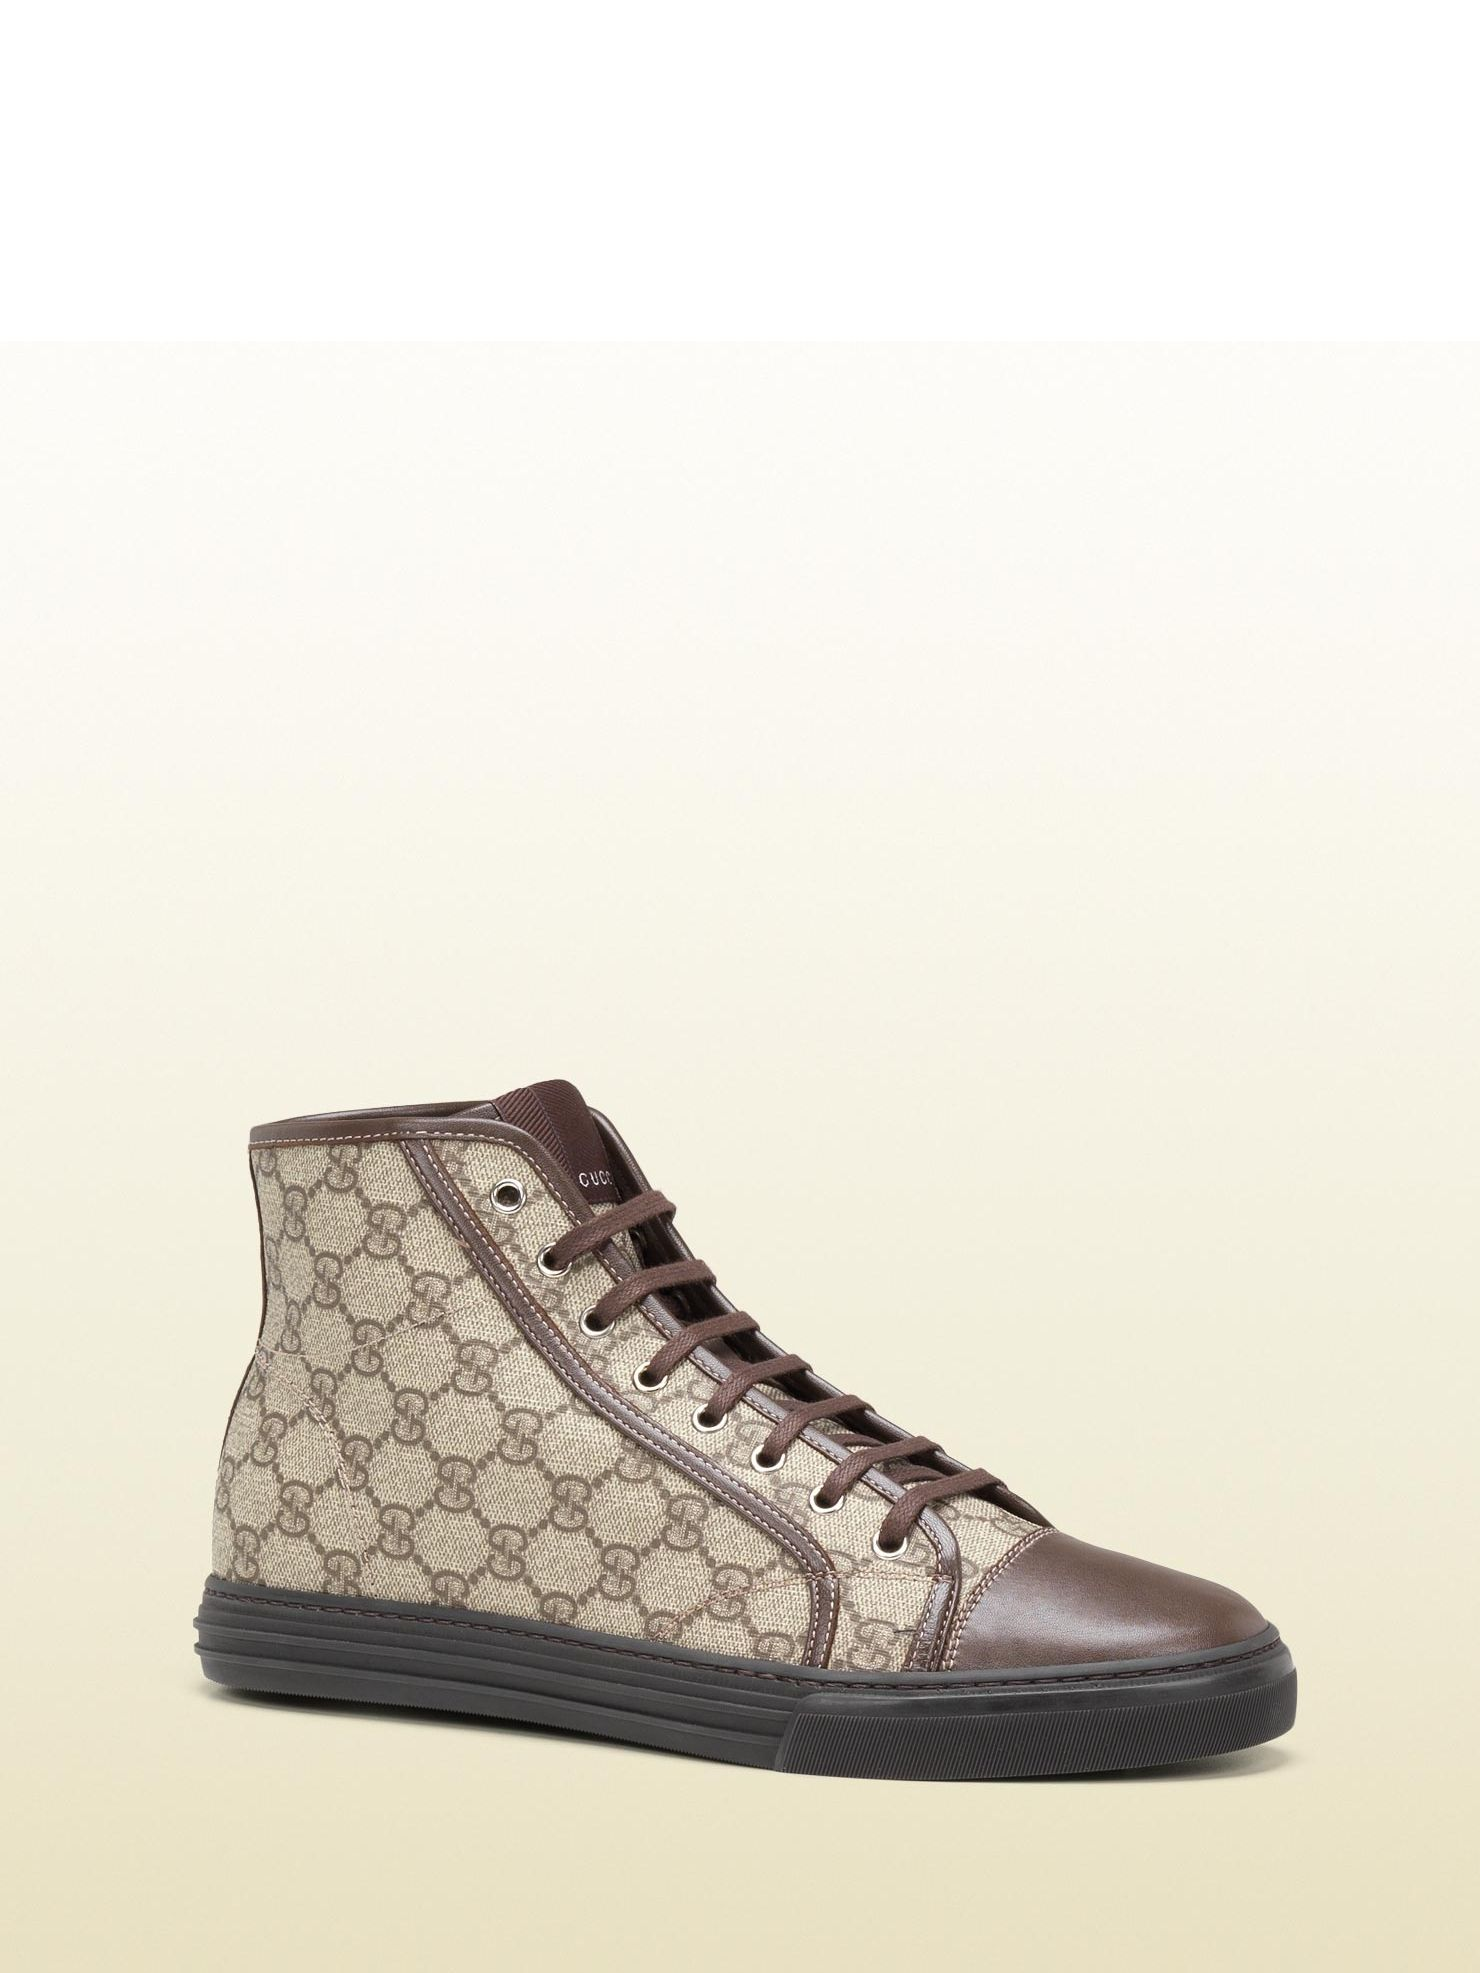 Gucci Sneakers Dark Brown Beige Shoes For Men Low Price